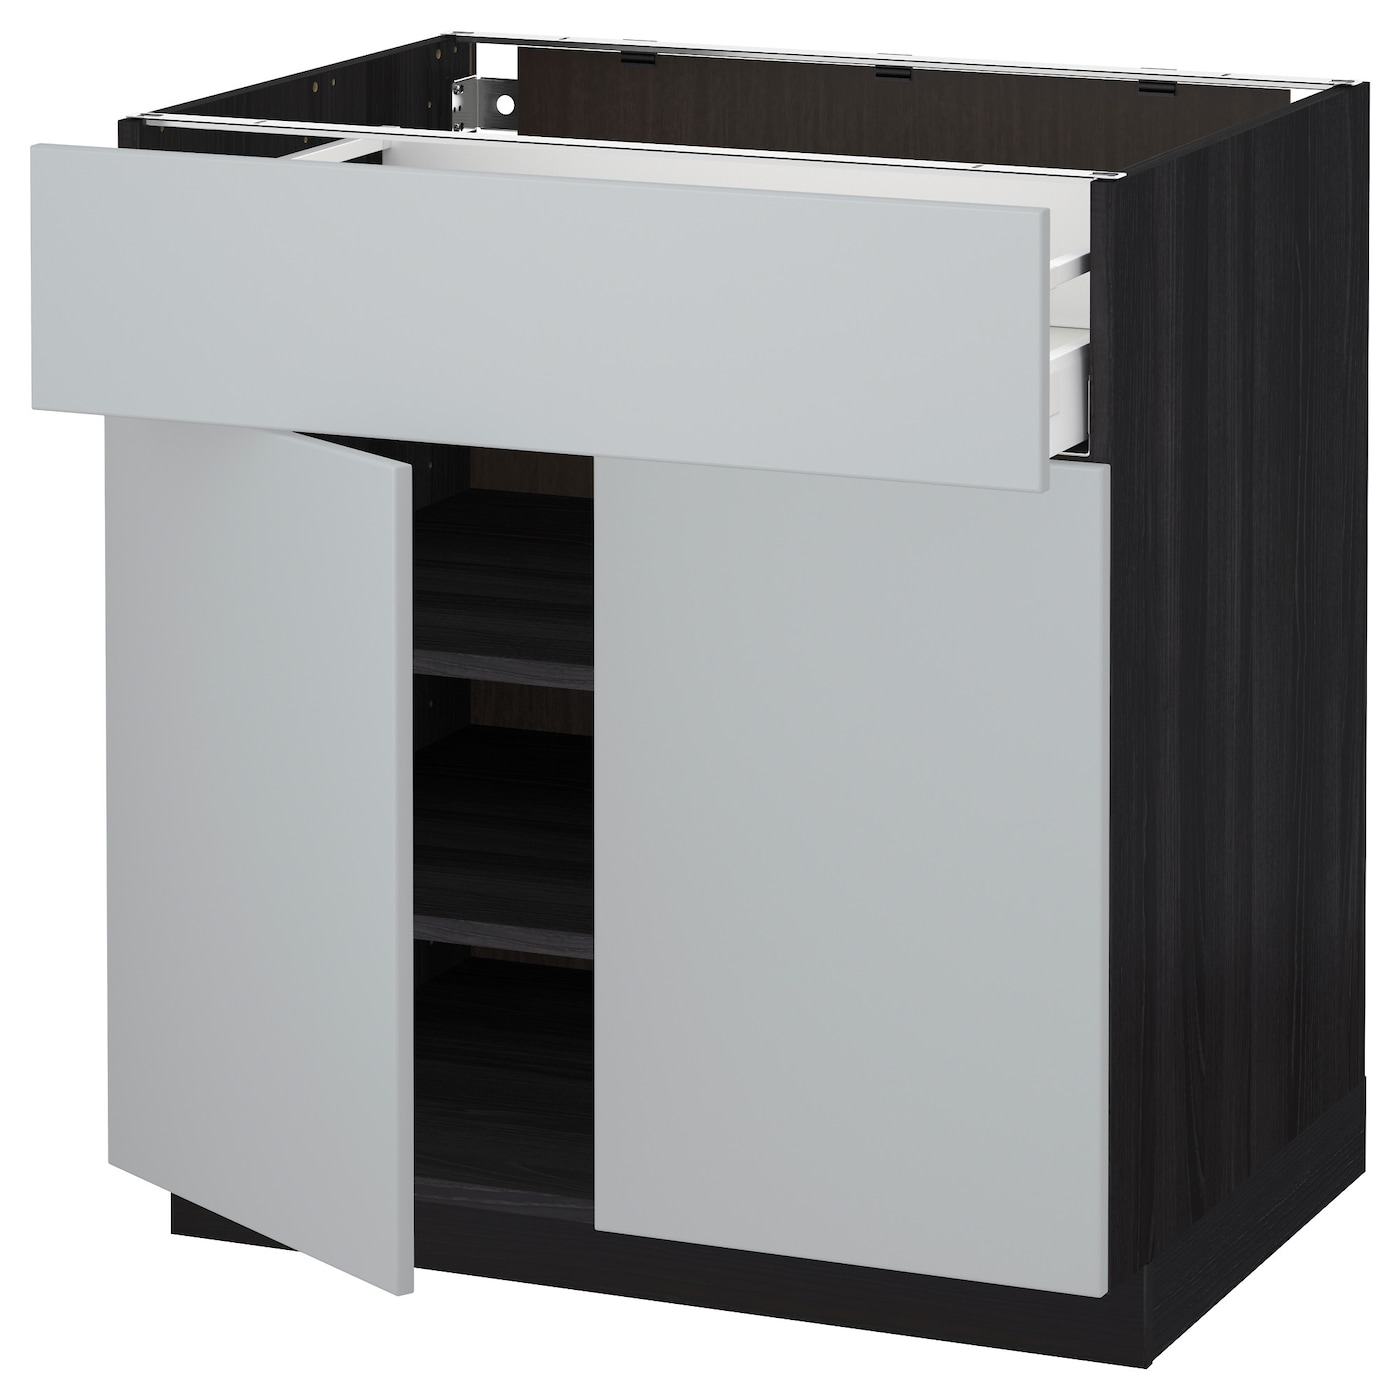 metod maximera base cabinet with drawer 2 doors black veddinge grey 80 x 60 cm ikea. Black Bedroom Furniture Sets. Home Design Ideas